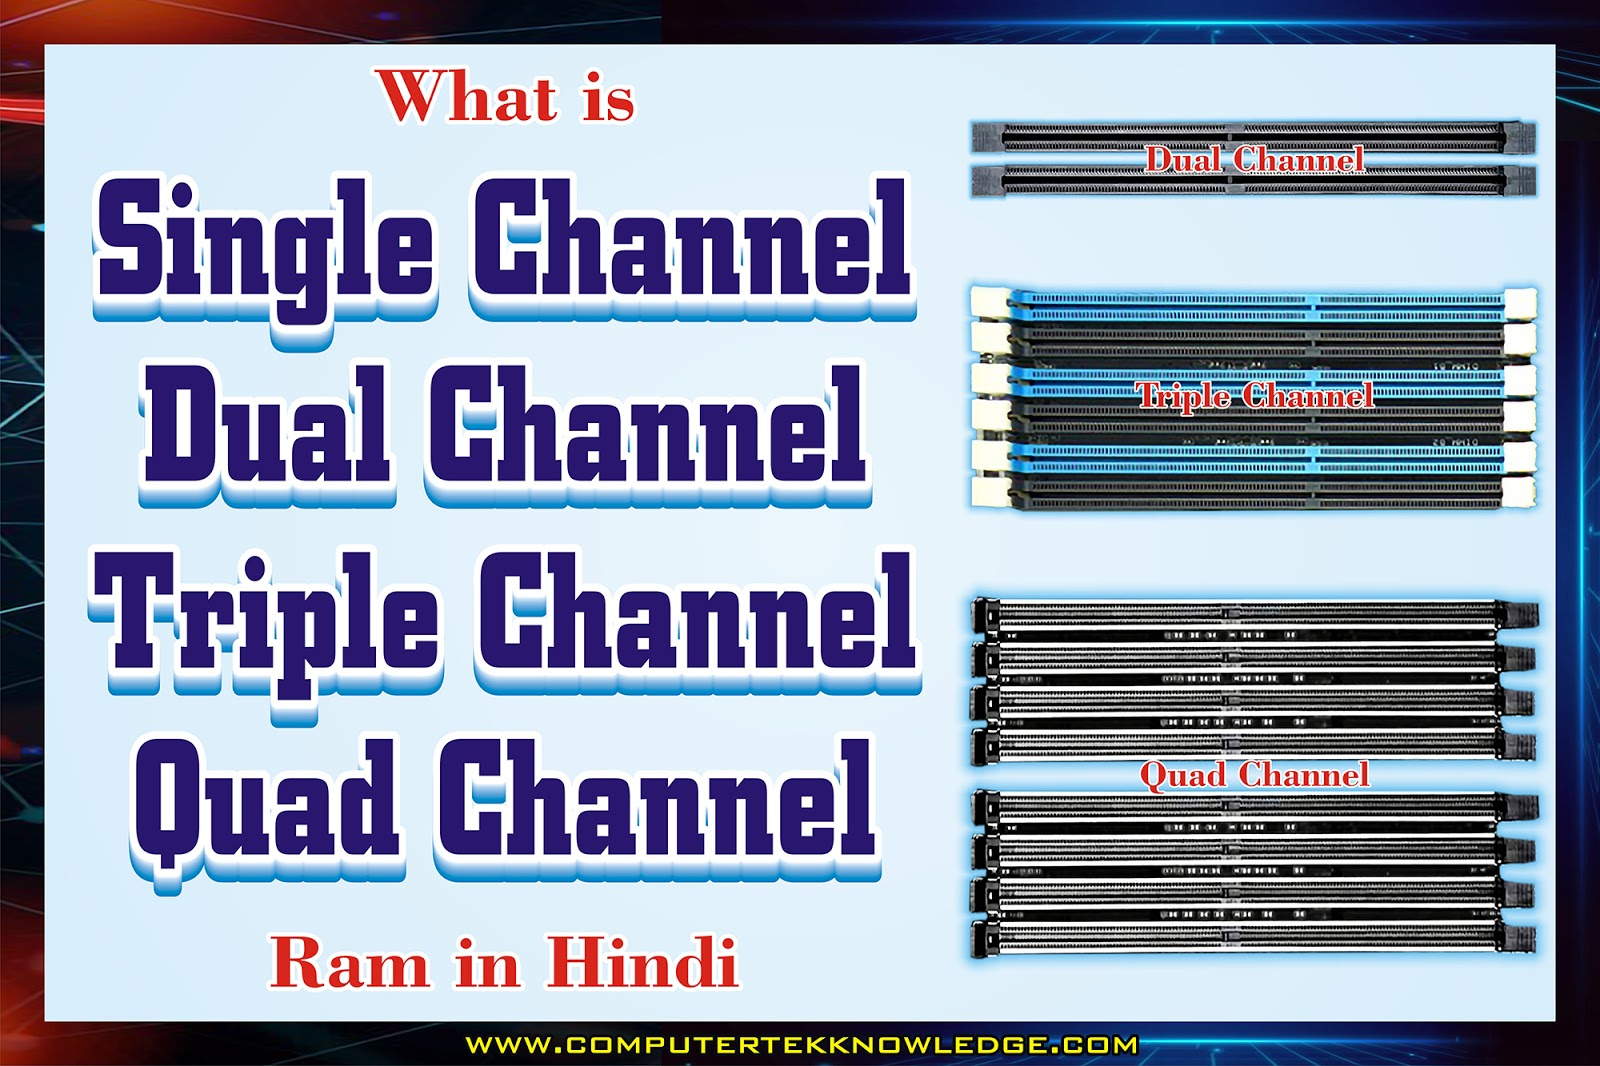 single channel, dual channel quad channel ram in hindi